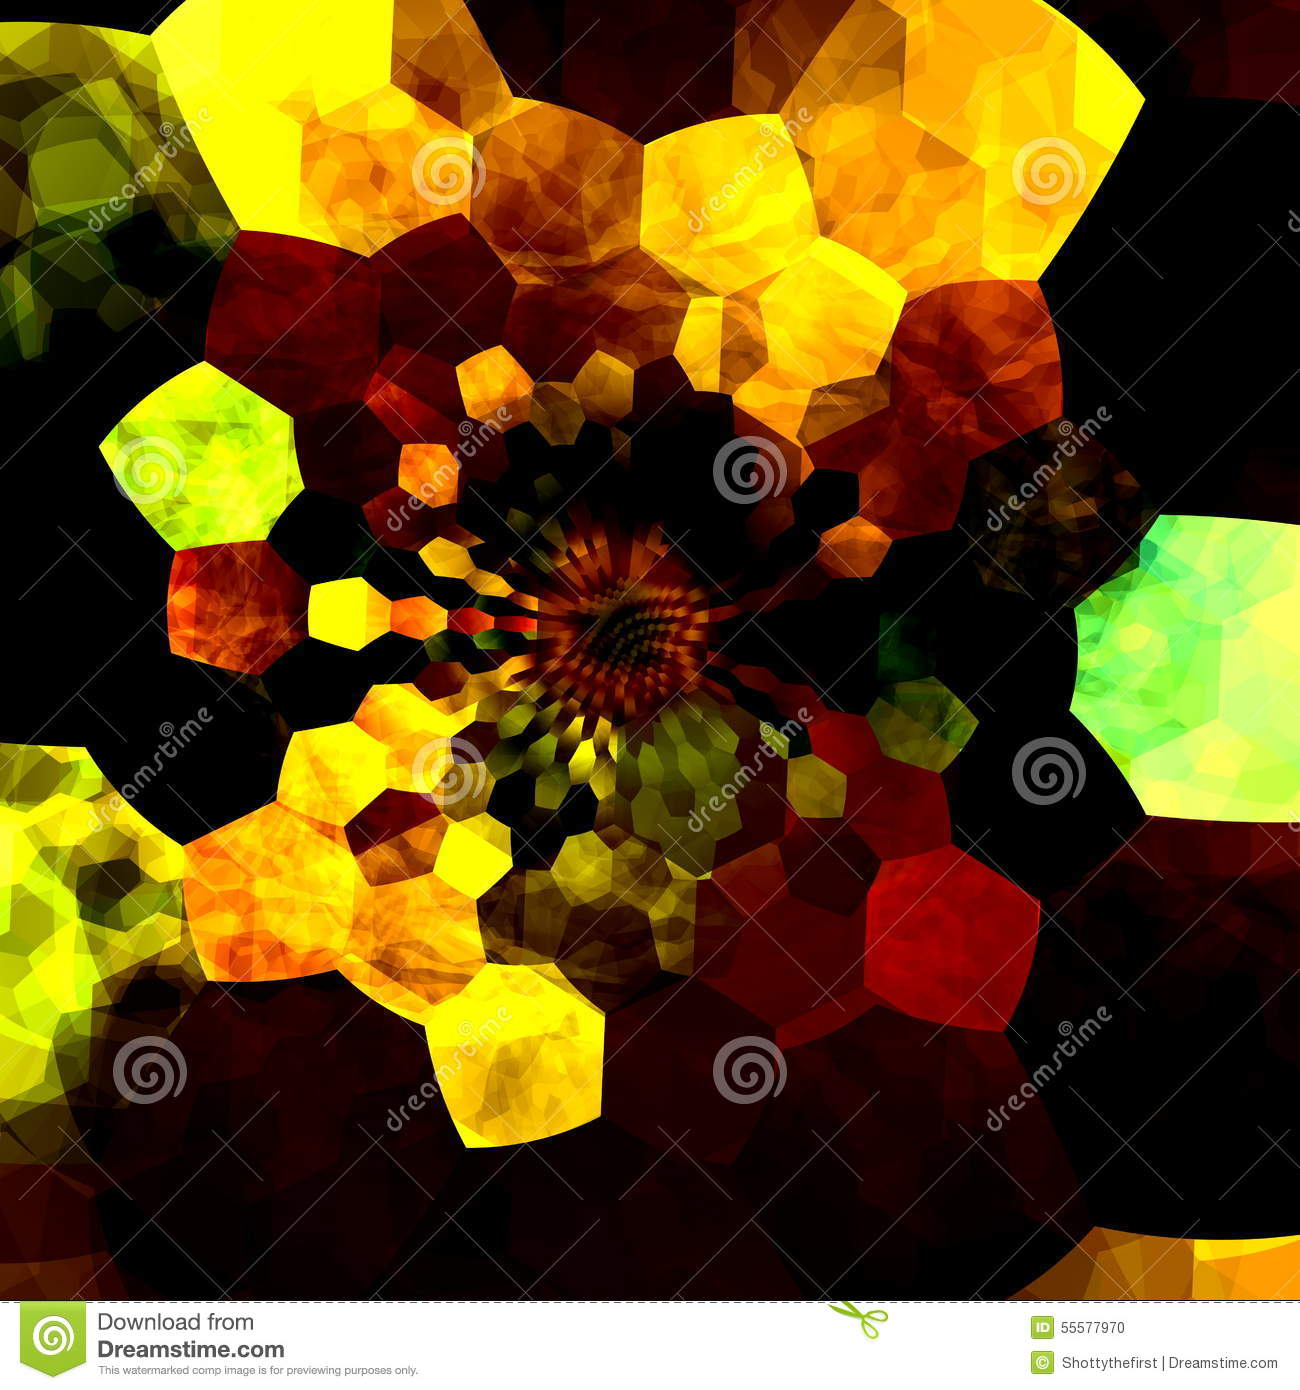 1c5ea238dd7fa Artsy background design illustration. Art composition colors shapes many  different sizes. Creative abstract wallpaper screen.